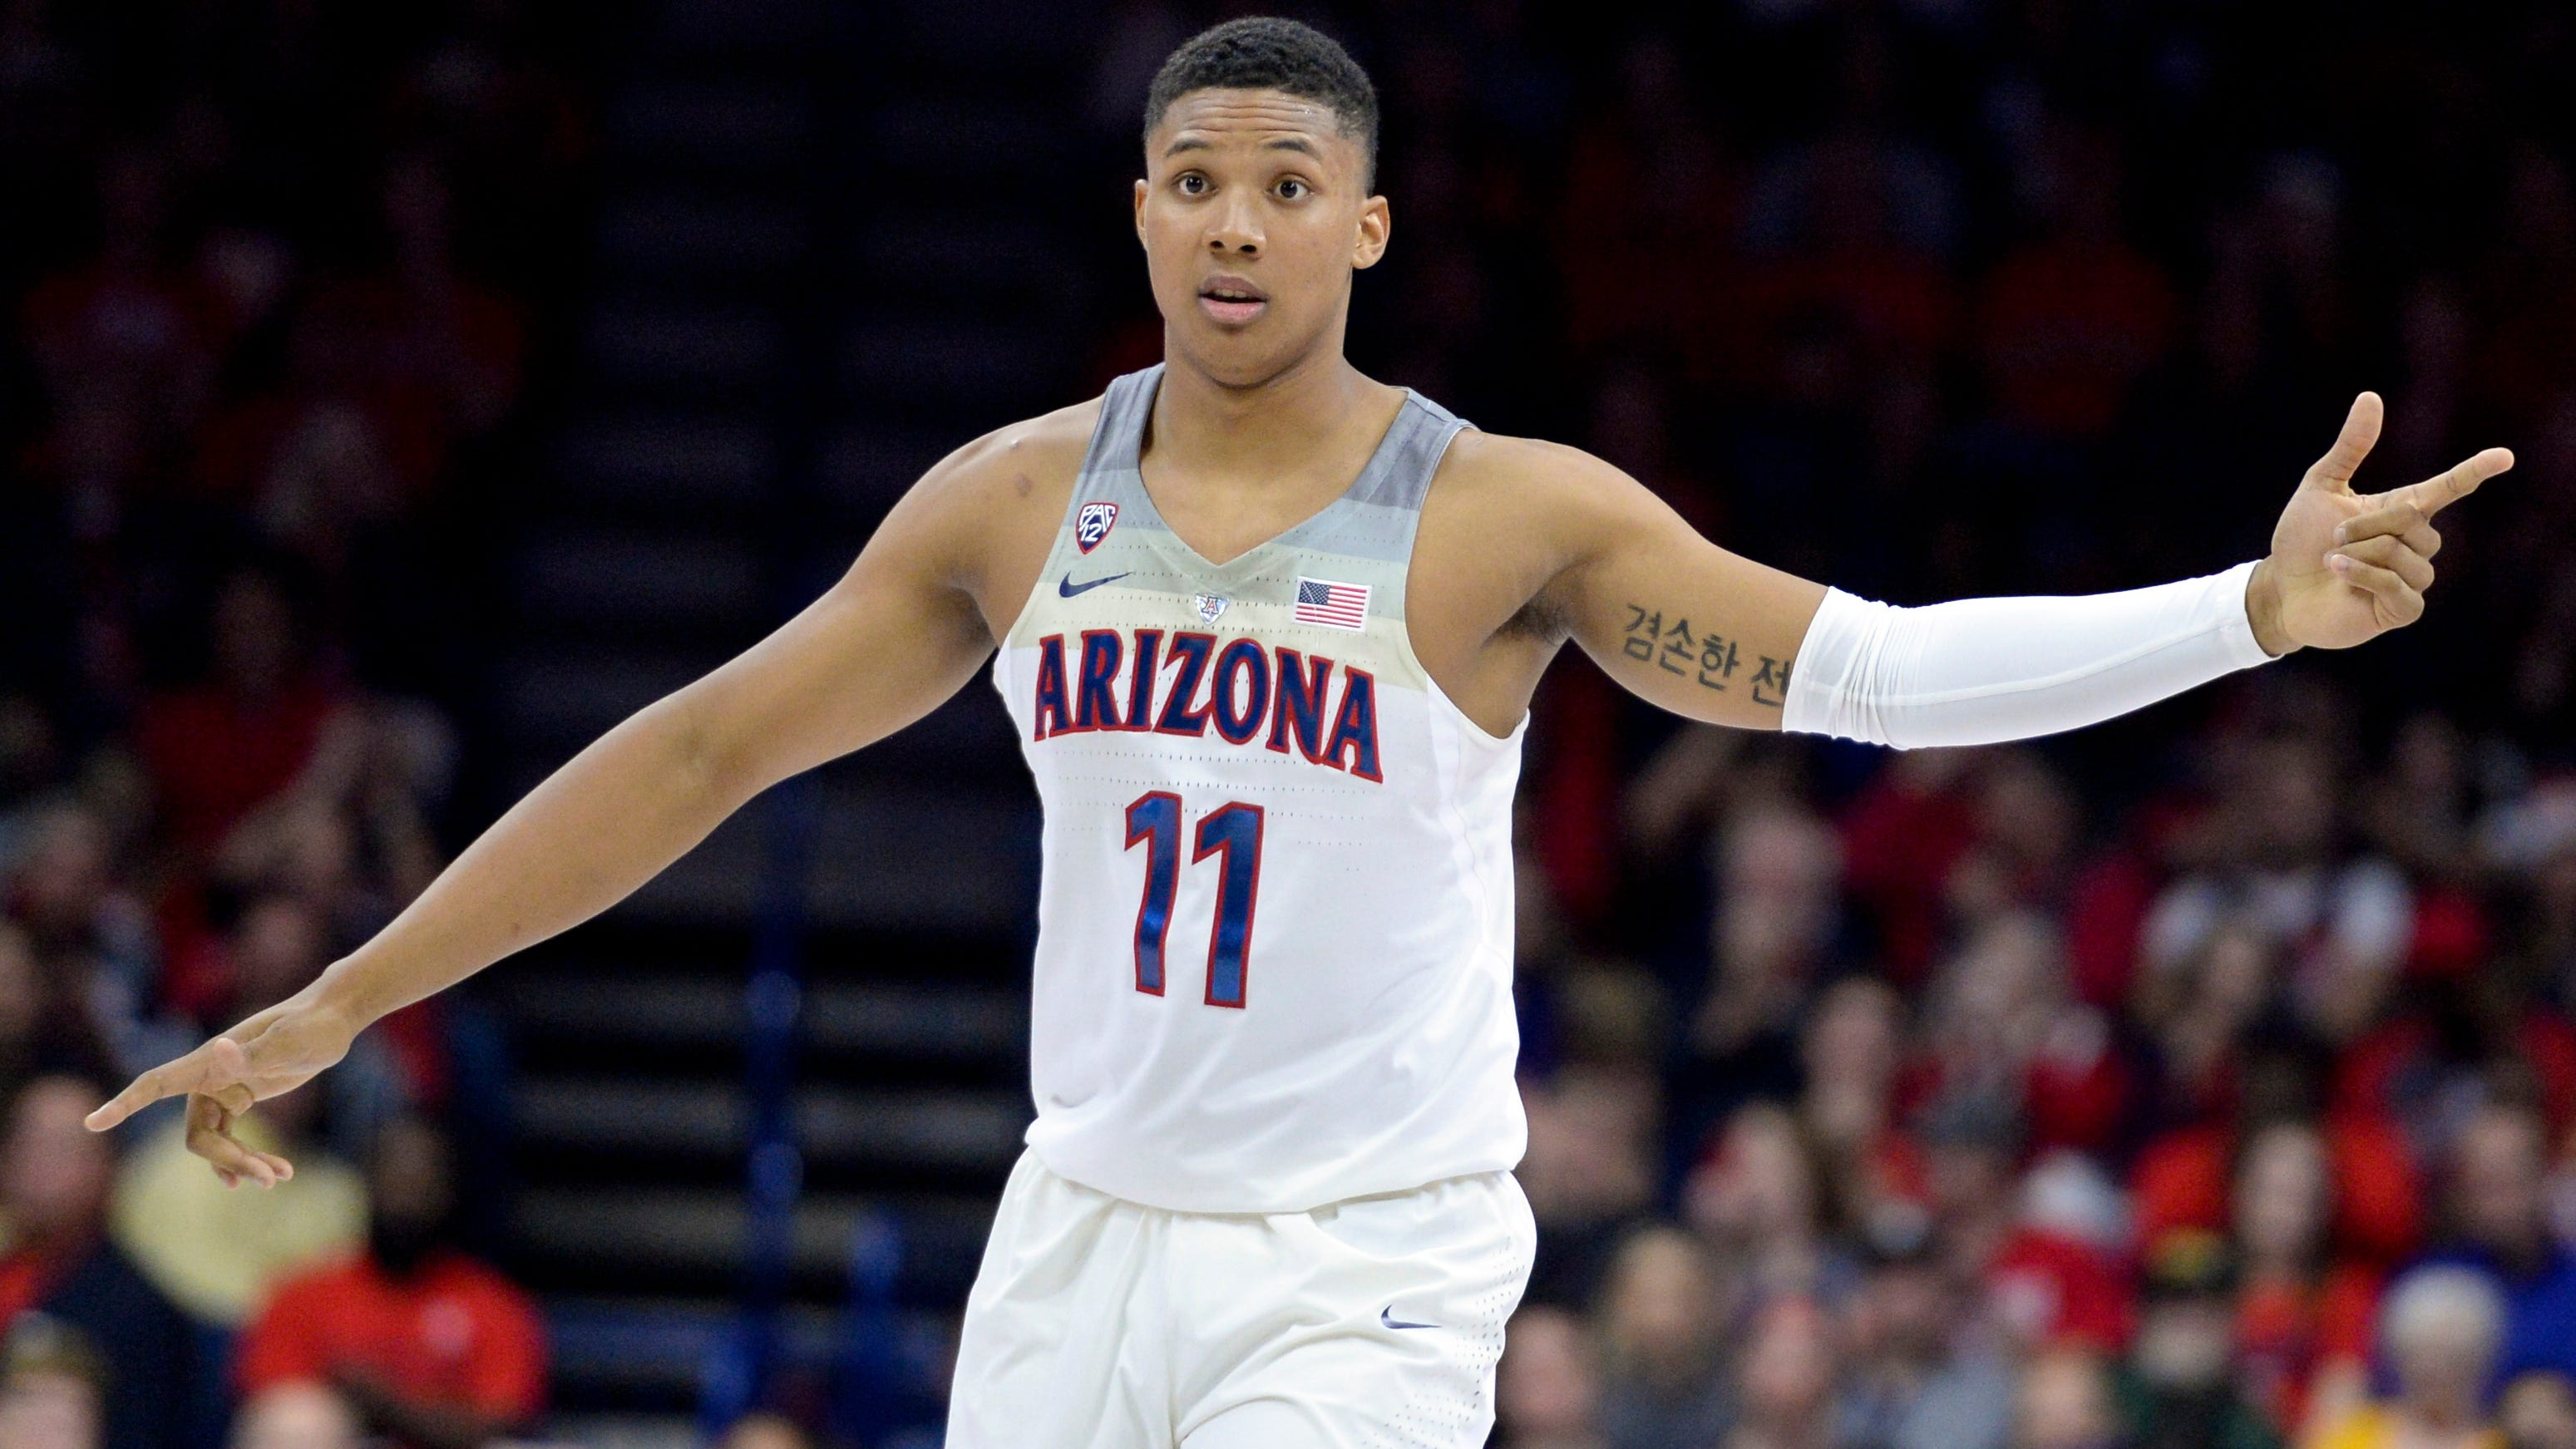 Arizona Wildcats forward Ira Lee celebrates after scoring against the North Dakota State Bison during a home game last season in Tucson.